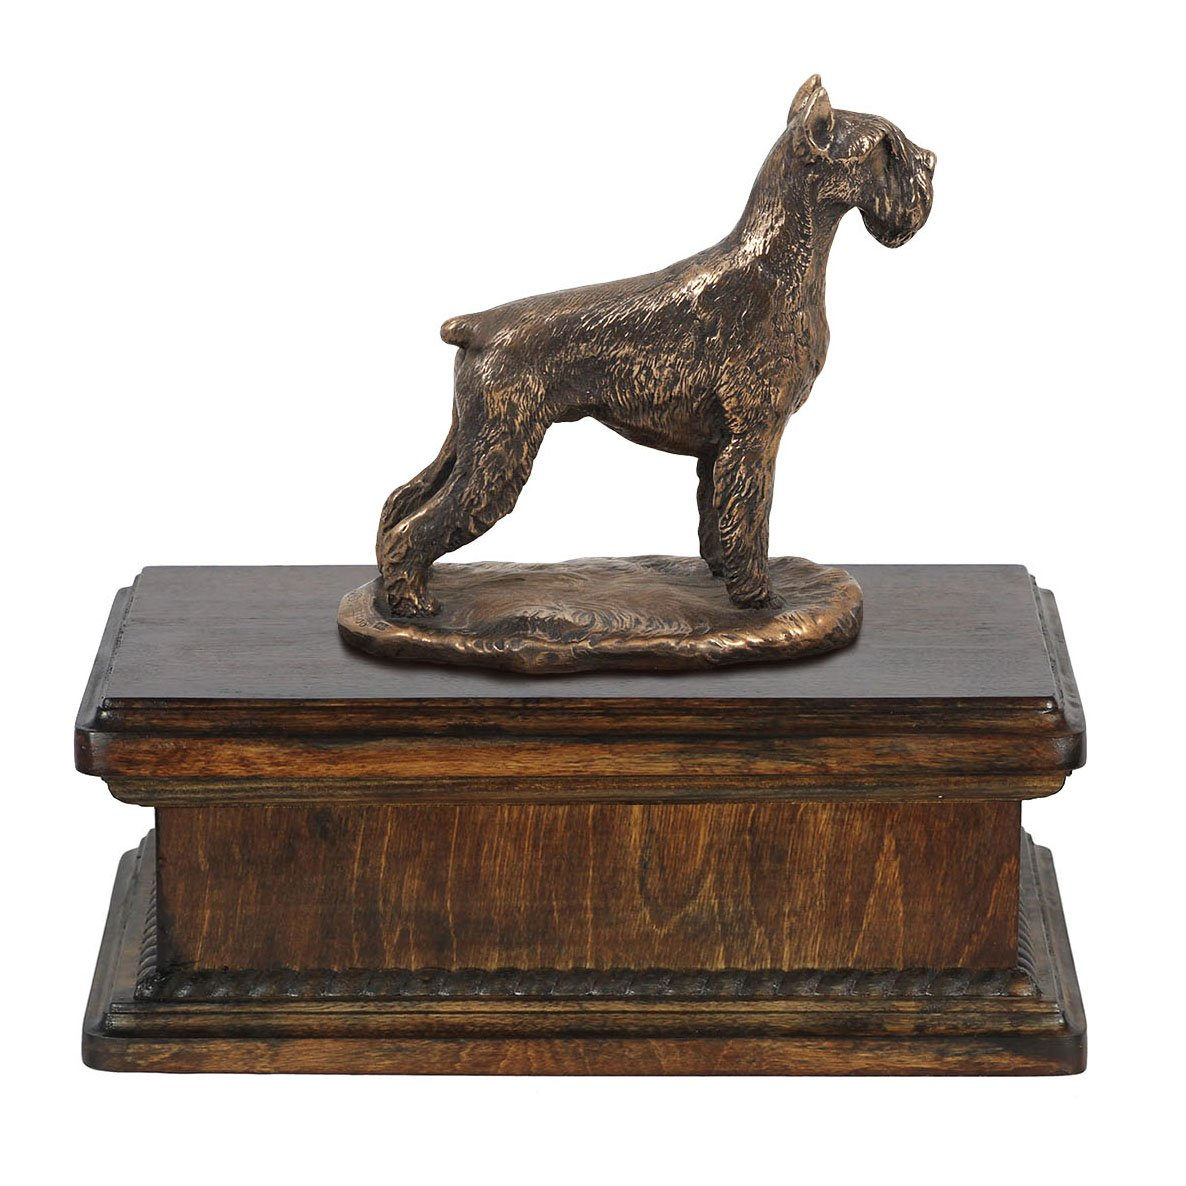 Schnauzer (cropped), memorial, urn for dog's ashes, with dog statue, exclusive, ArtDog